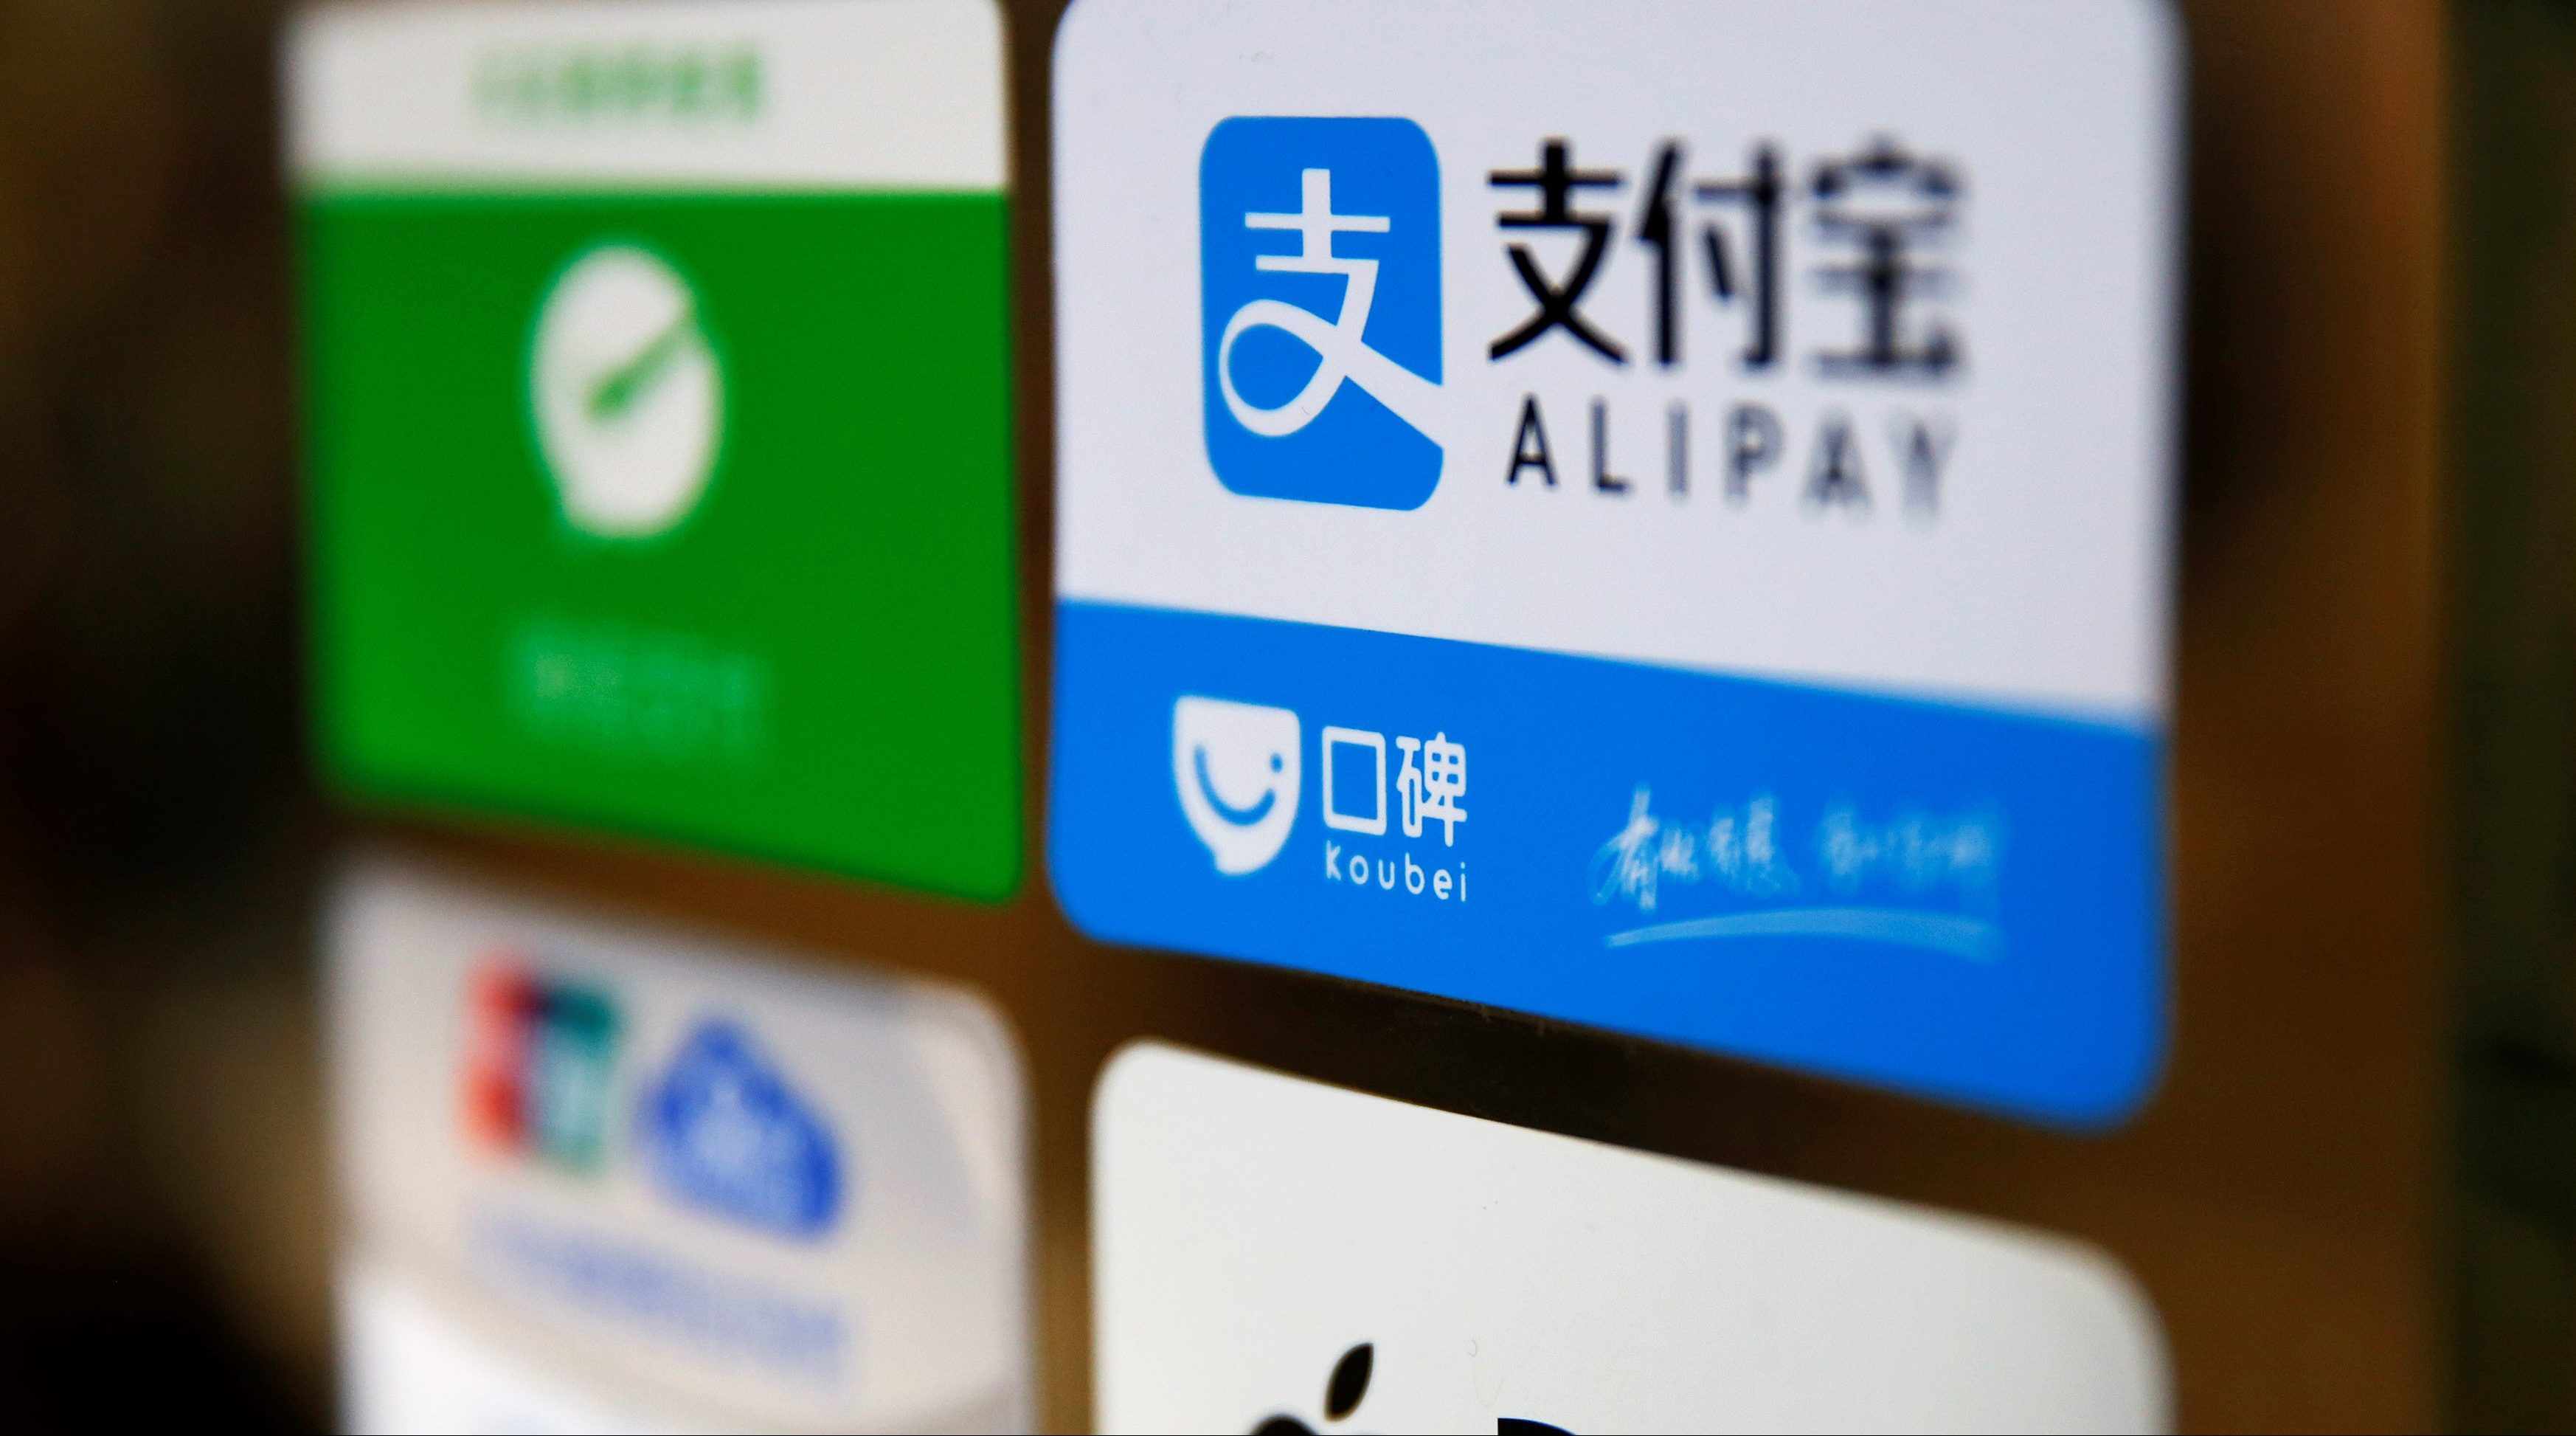 An Alipay logo is seen among other paying method stickers on the doors of a restaurant at the Beijing Railway Station in central Beijing January 13, 2017.